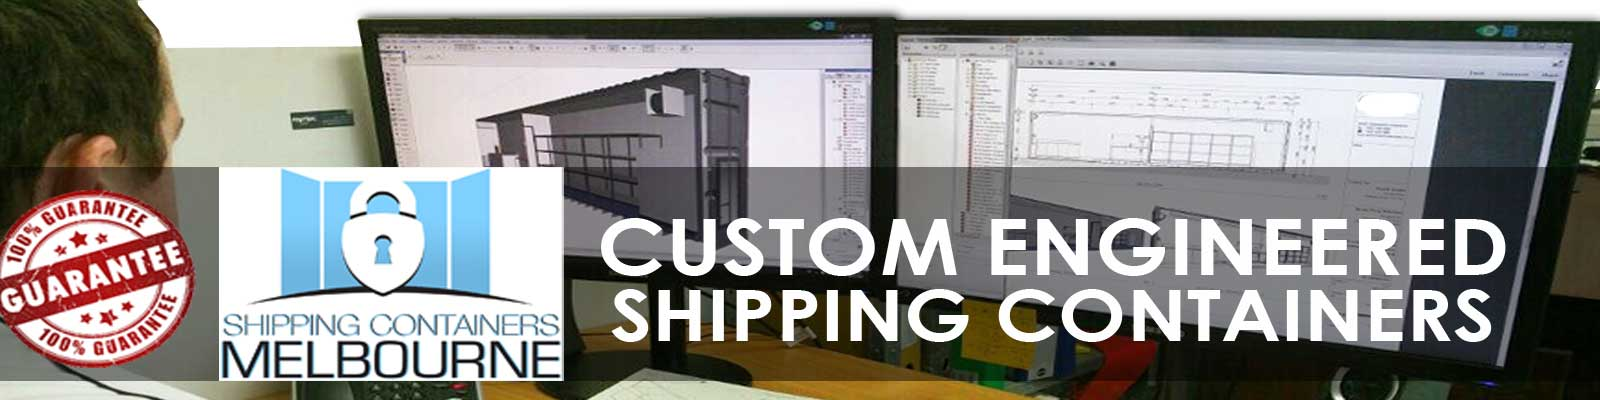 custom_engineered_shipping_containers